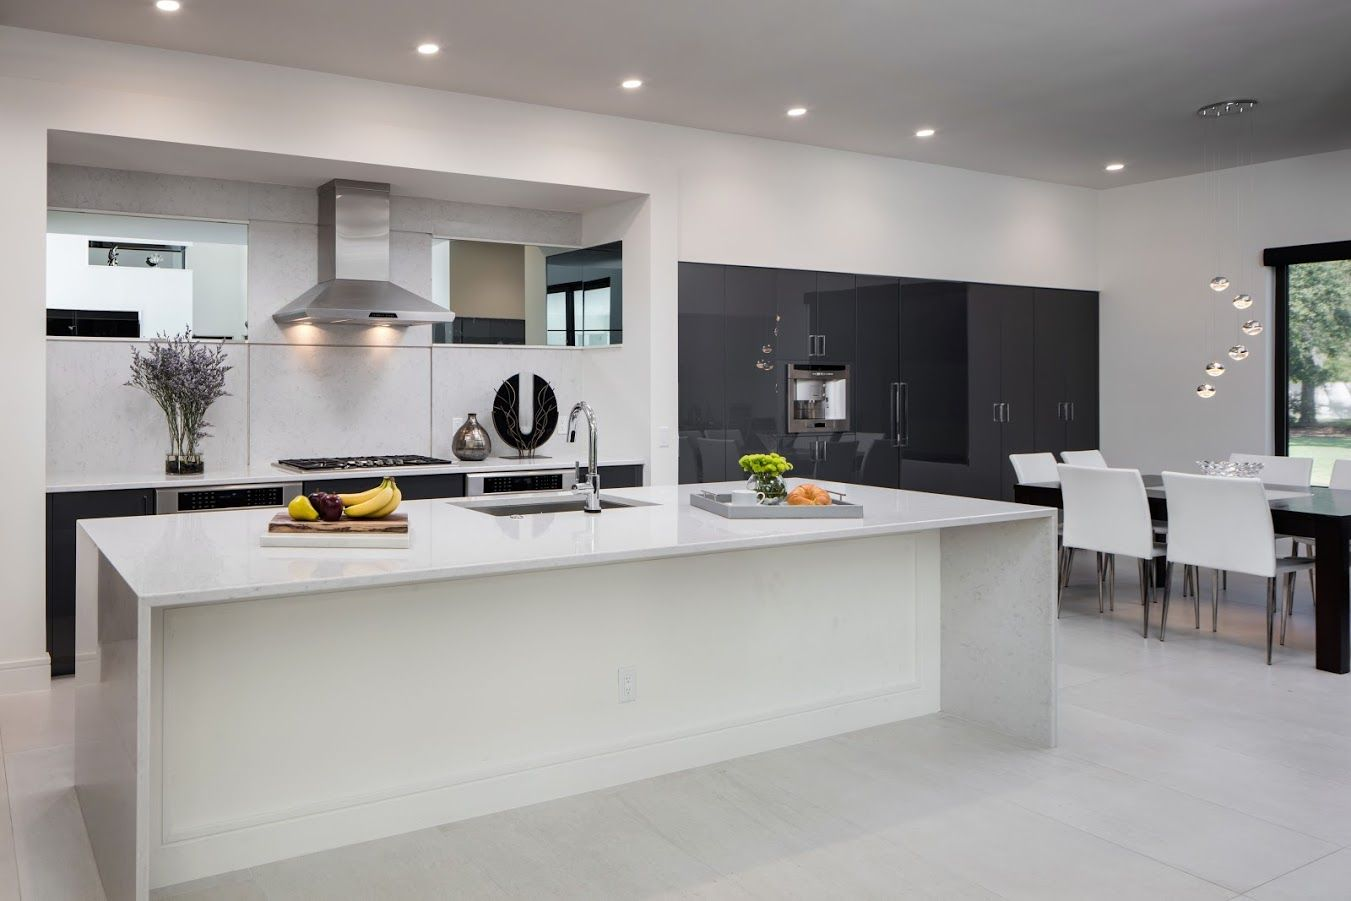 Modern Acrylic Gloss Kitchen Designed By Monarch Kitchen And Bath